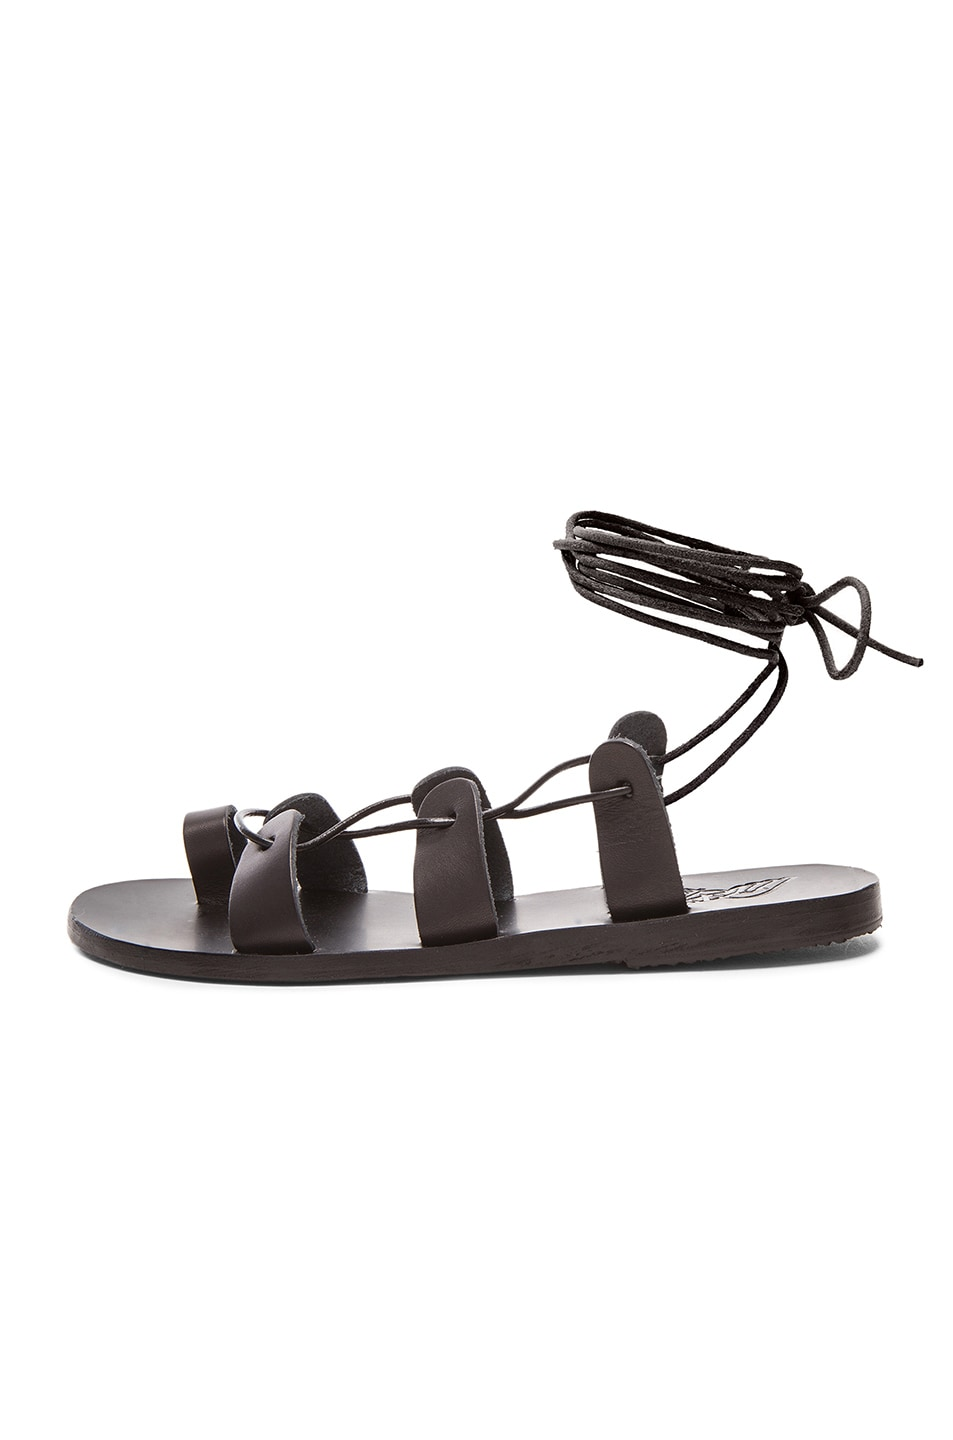 Image 5 of Ancient Greek Sandals Leather Alcyone Sandals in Black